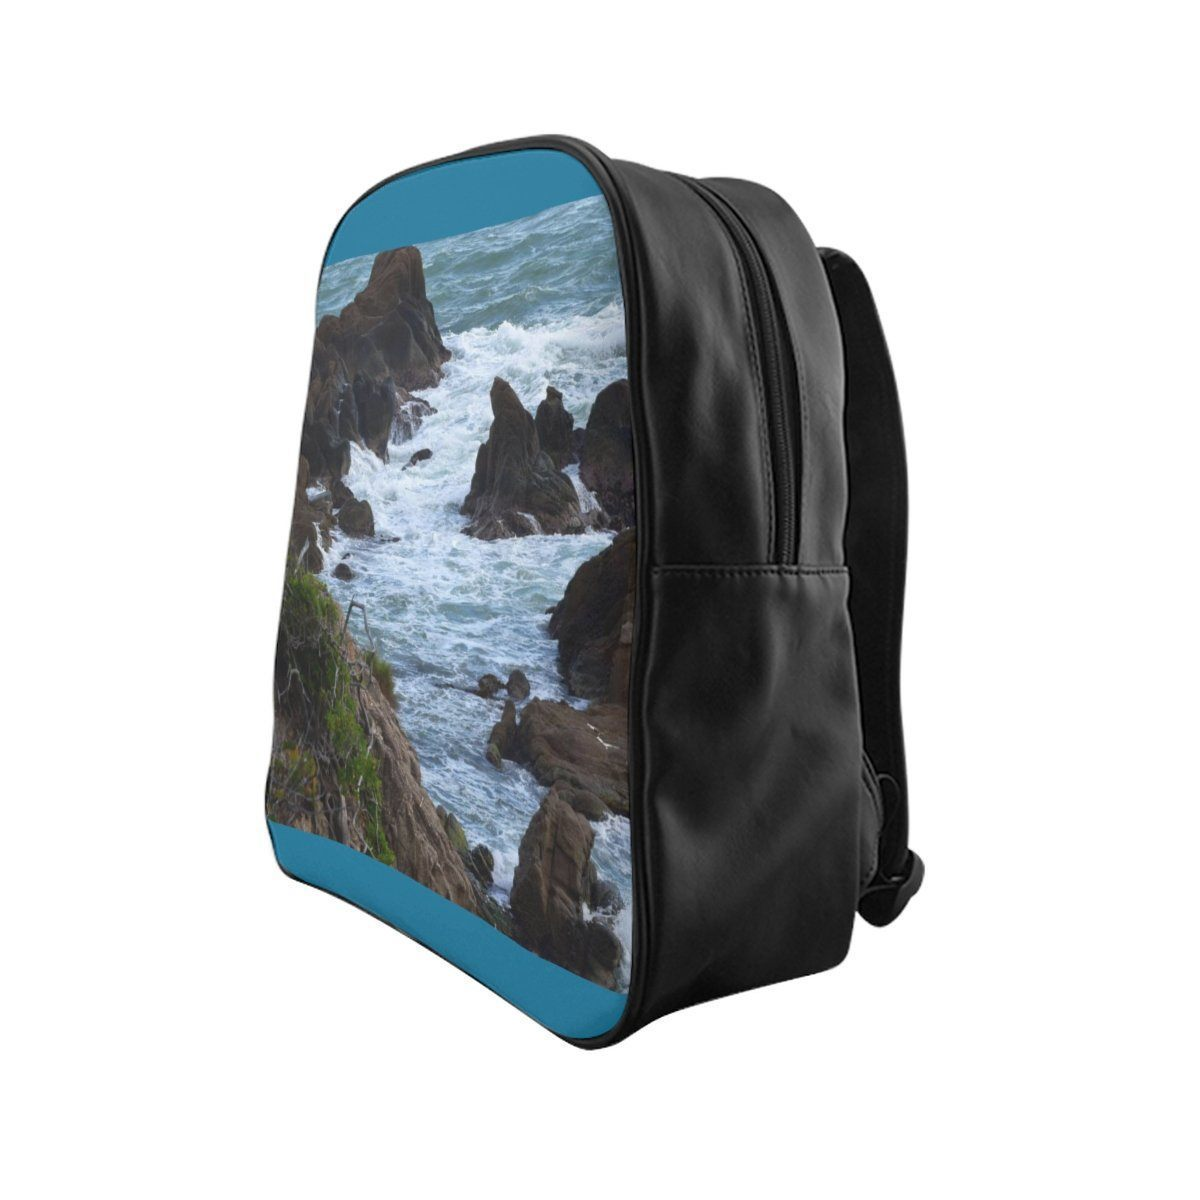 School Backpack - Awesome Rocky Beack in Palmas de Mar Housing complex - Puerto Rico Bags Printify